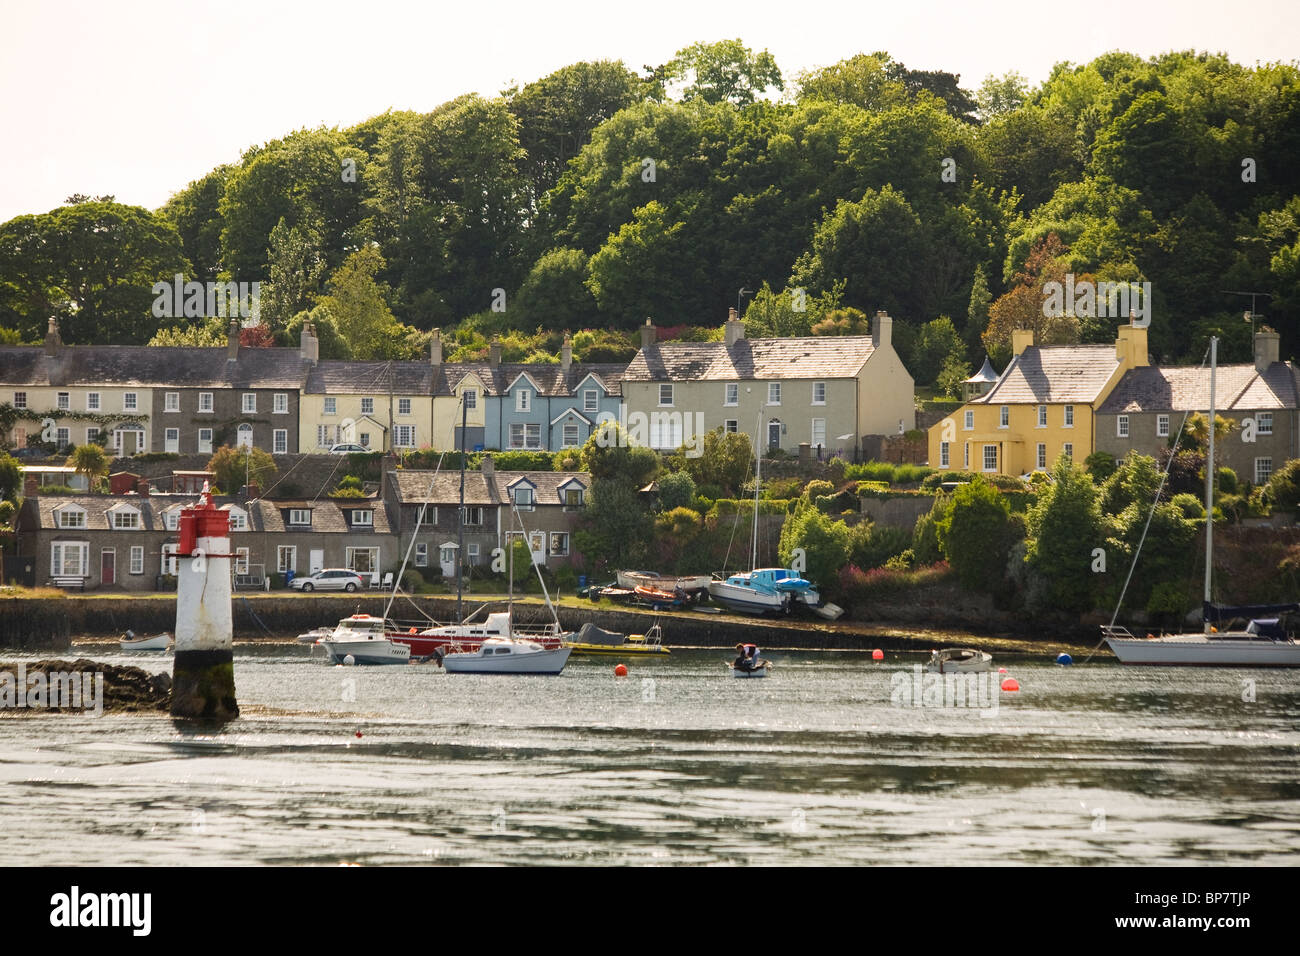 Strangford, County Down, Northern Ireland - Stock Image